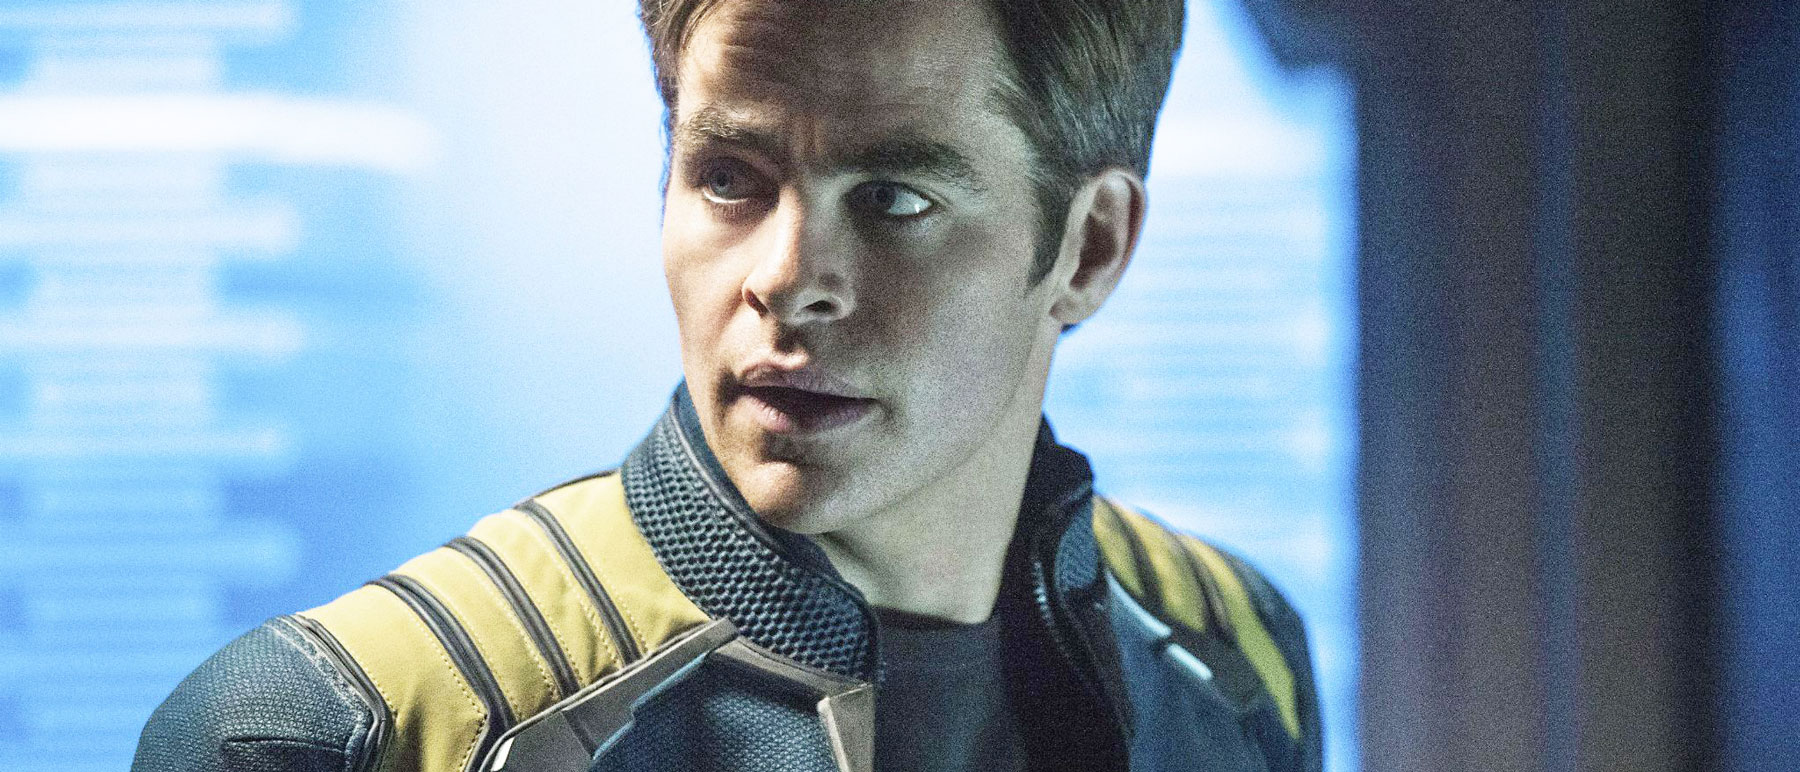 star-trek-4-chris-pine r-rated